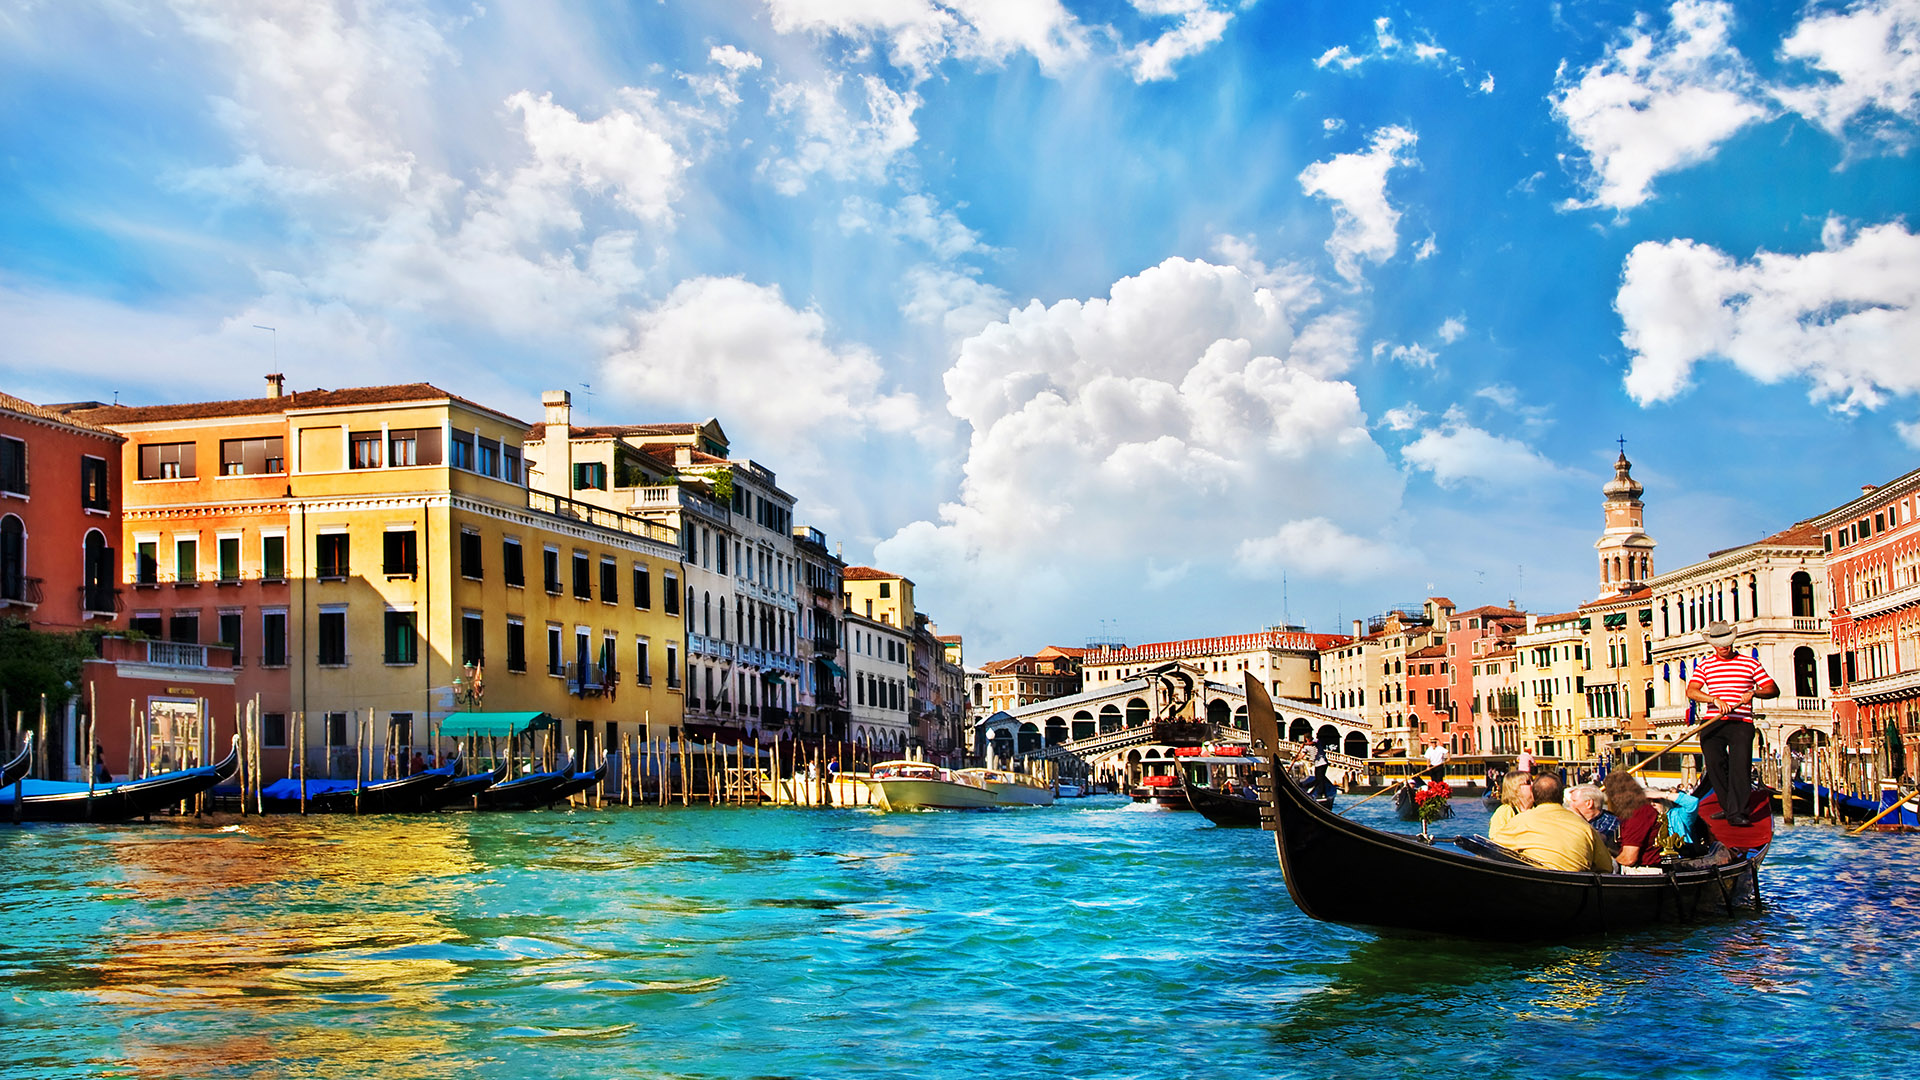 Around The World 52 Adventures Grand Canal Of Venice Italy